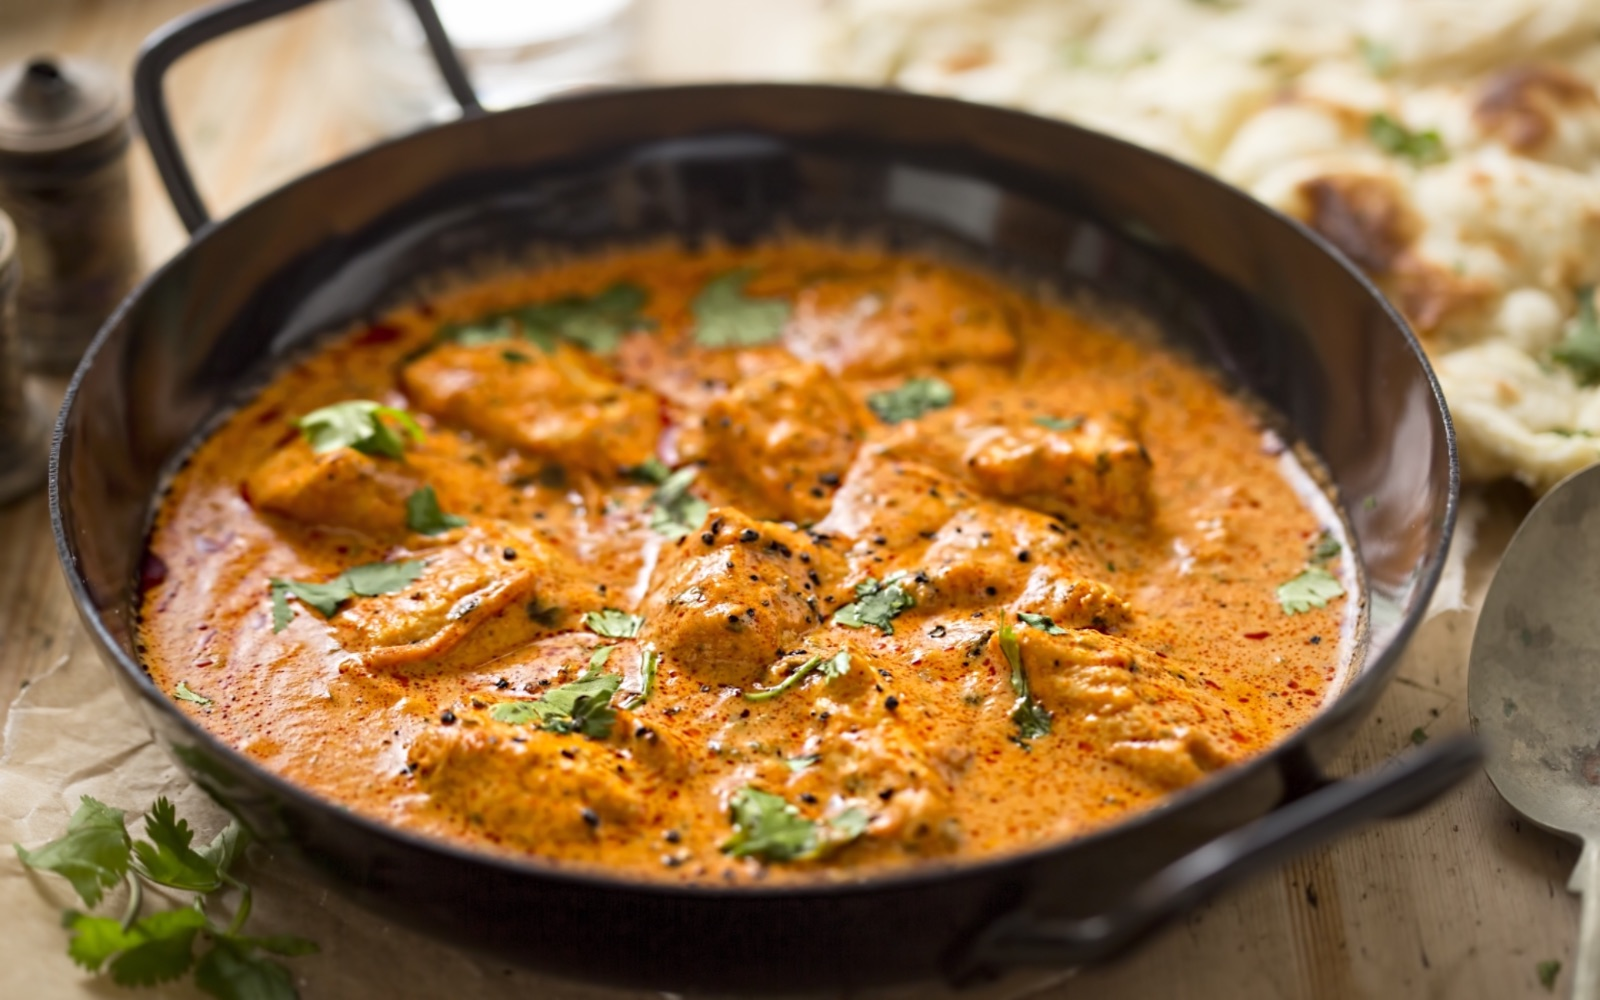 Butter chicken at Tandoori Grill